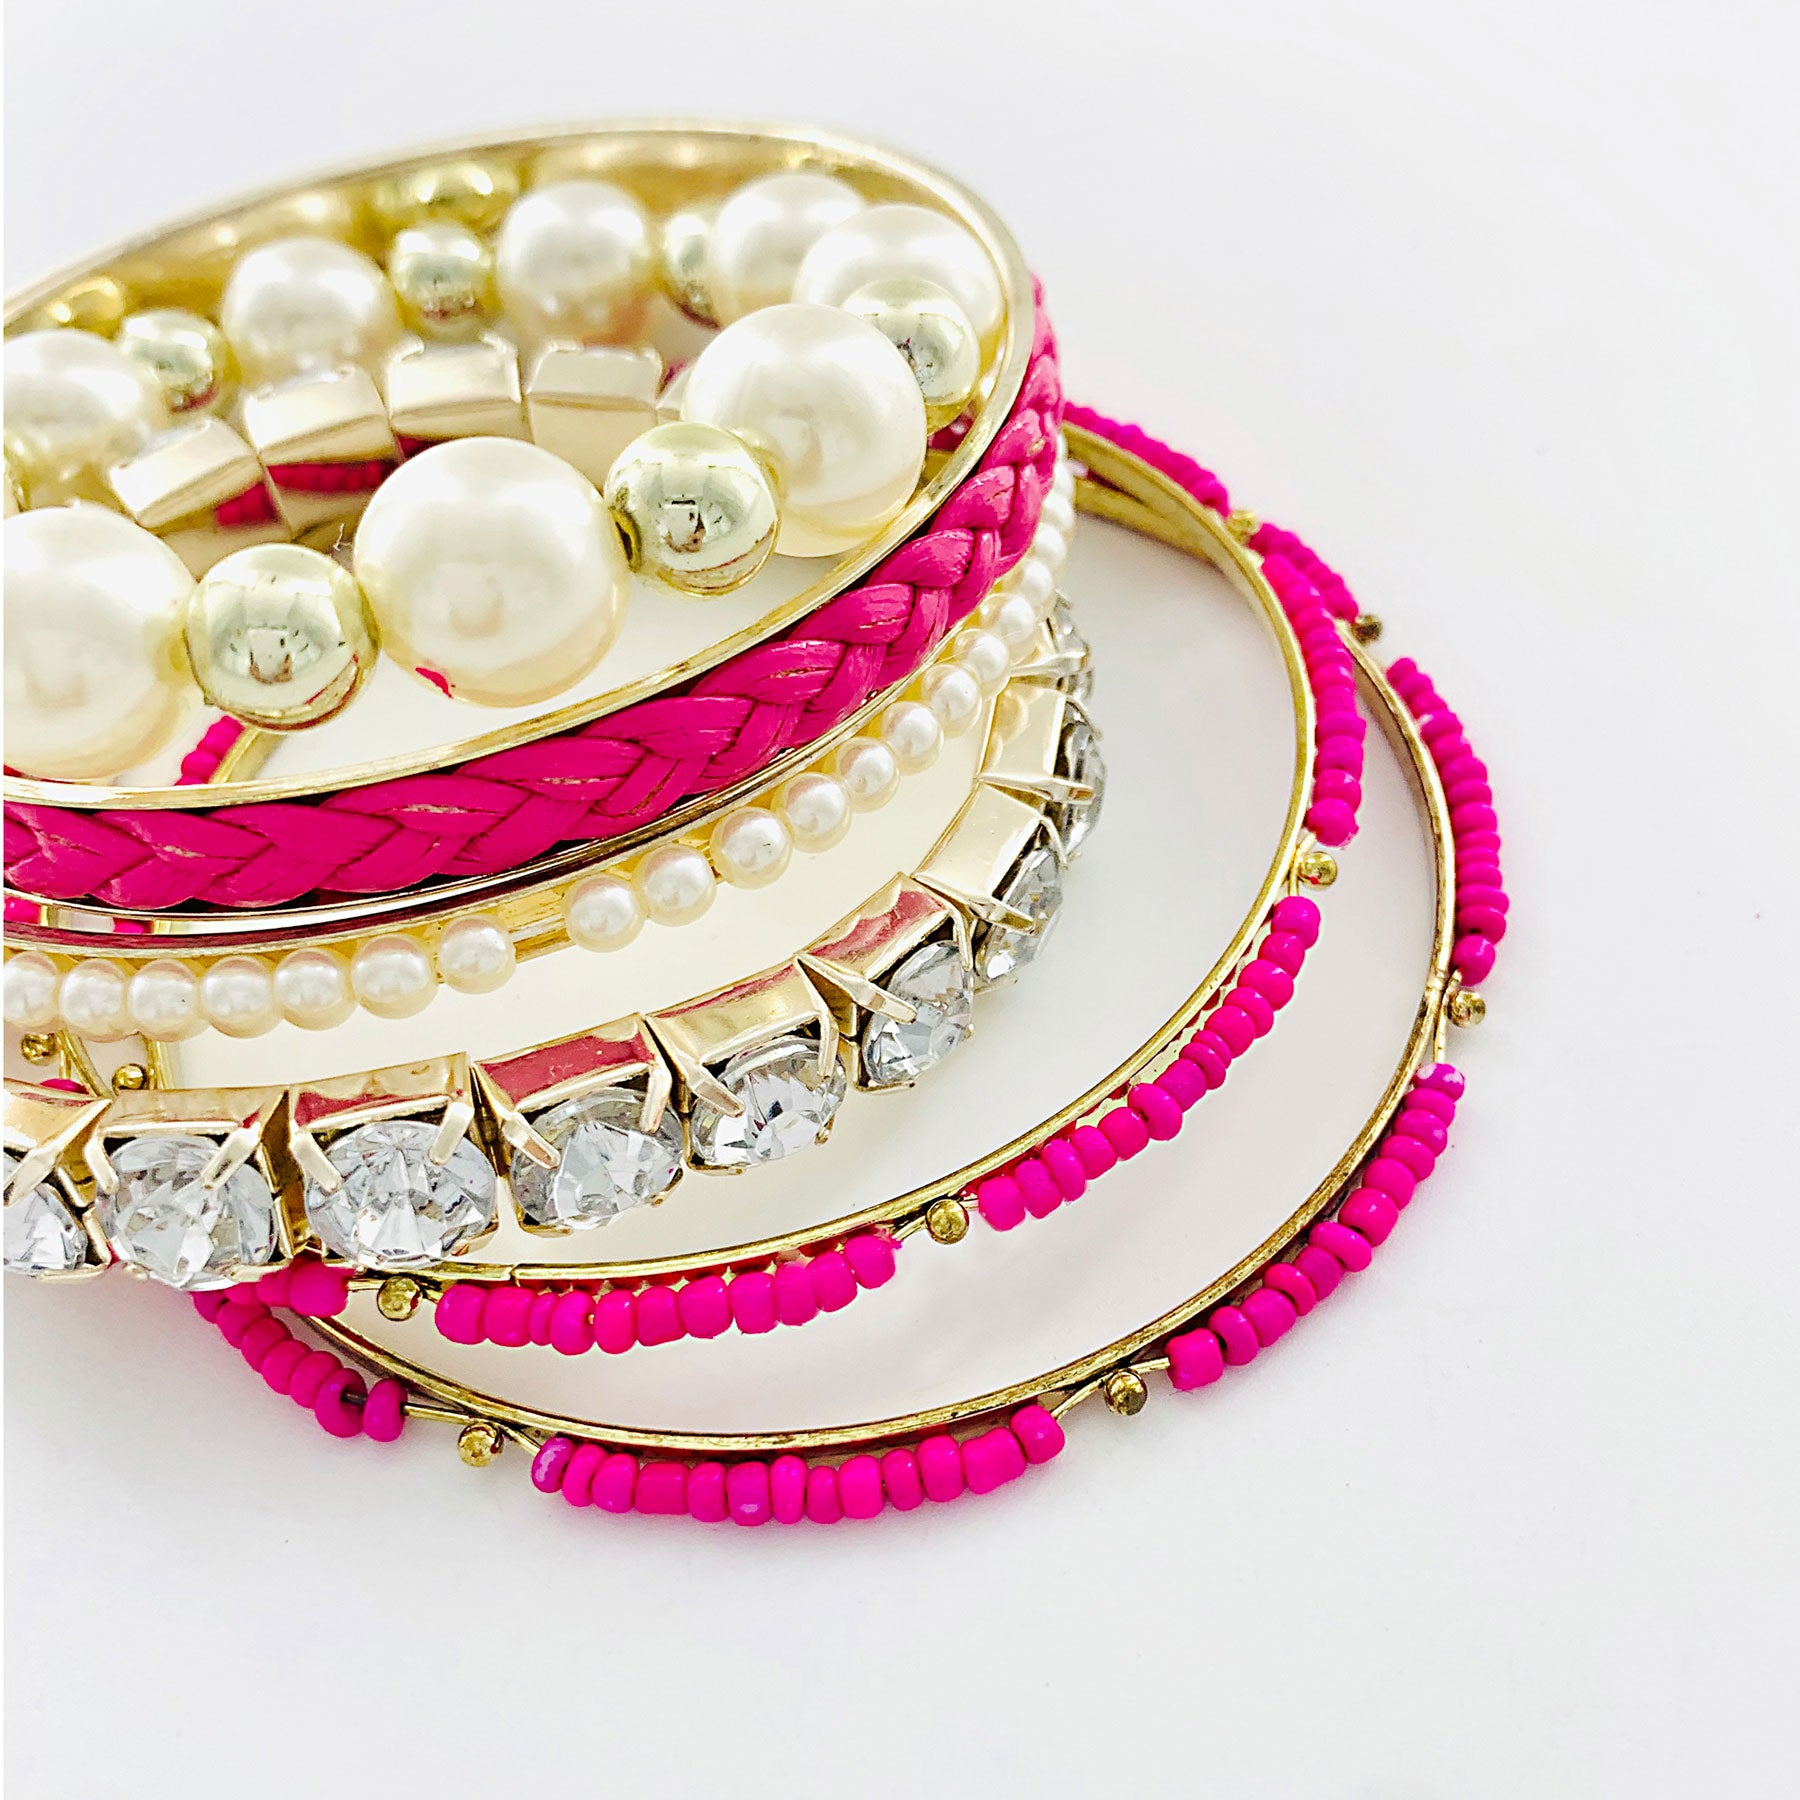 Gold Bangles with Hot Pink beads, Pearls and Diamante stones